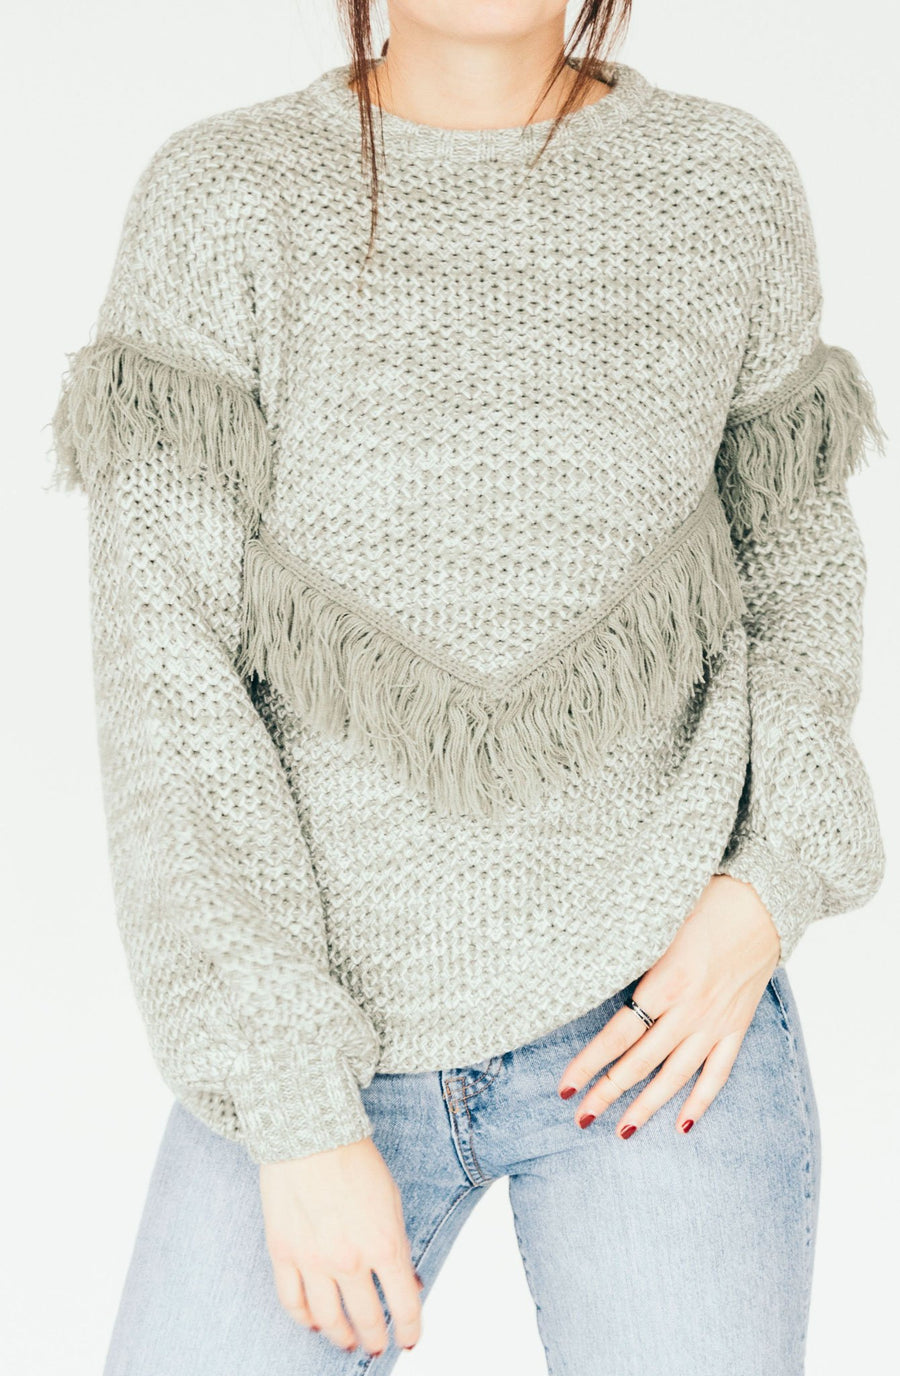 rue stiic wella knit fringe sweater - grey